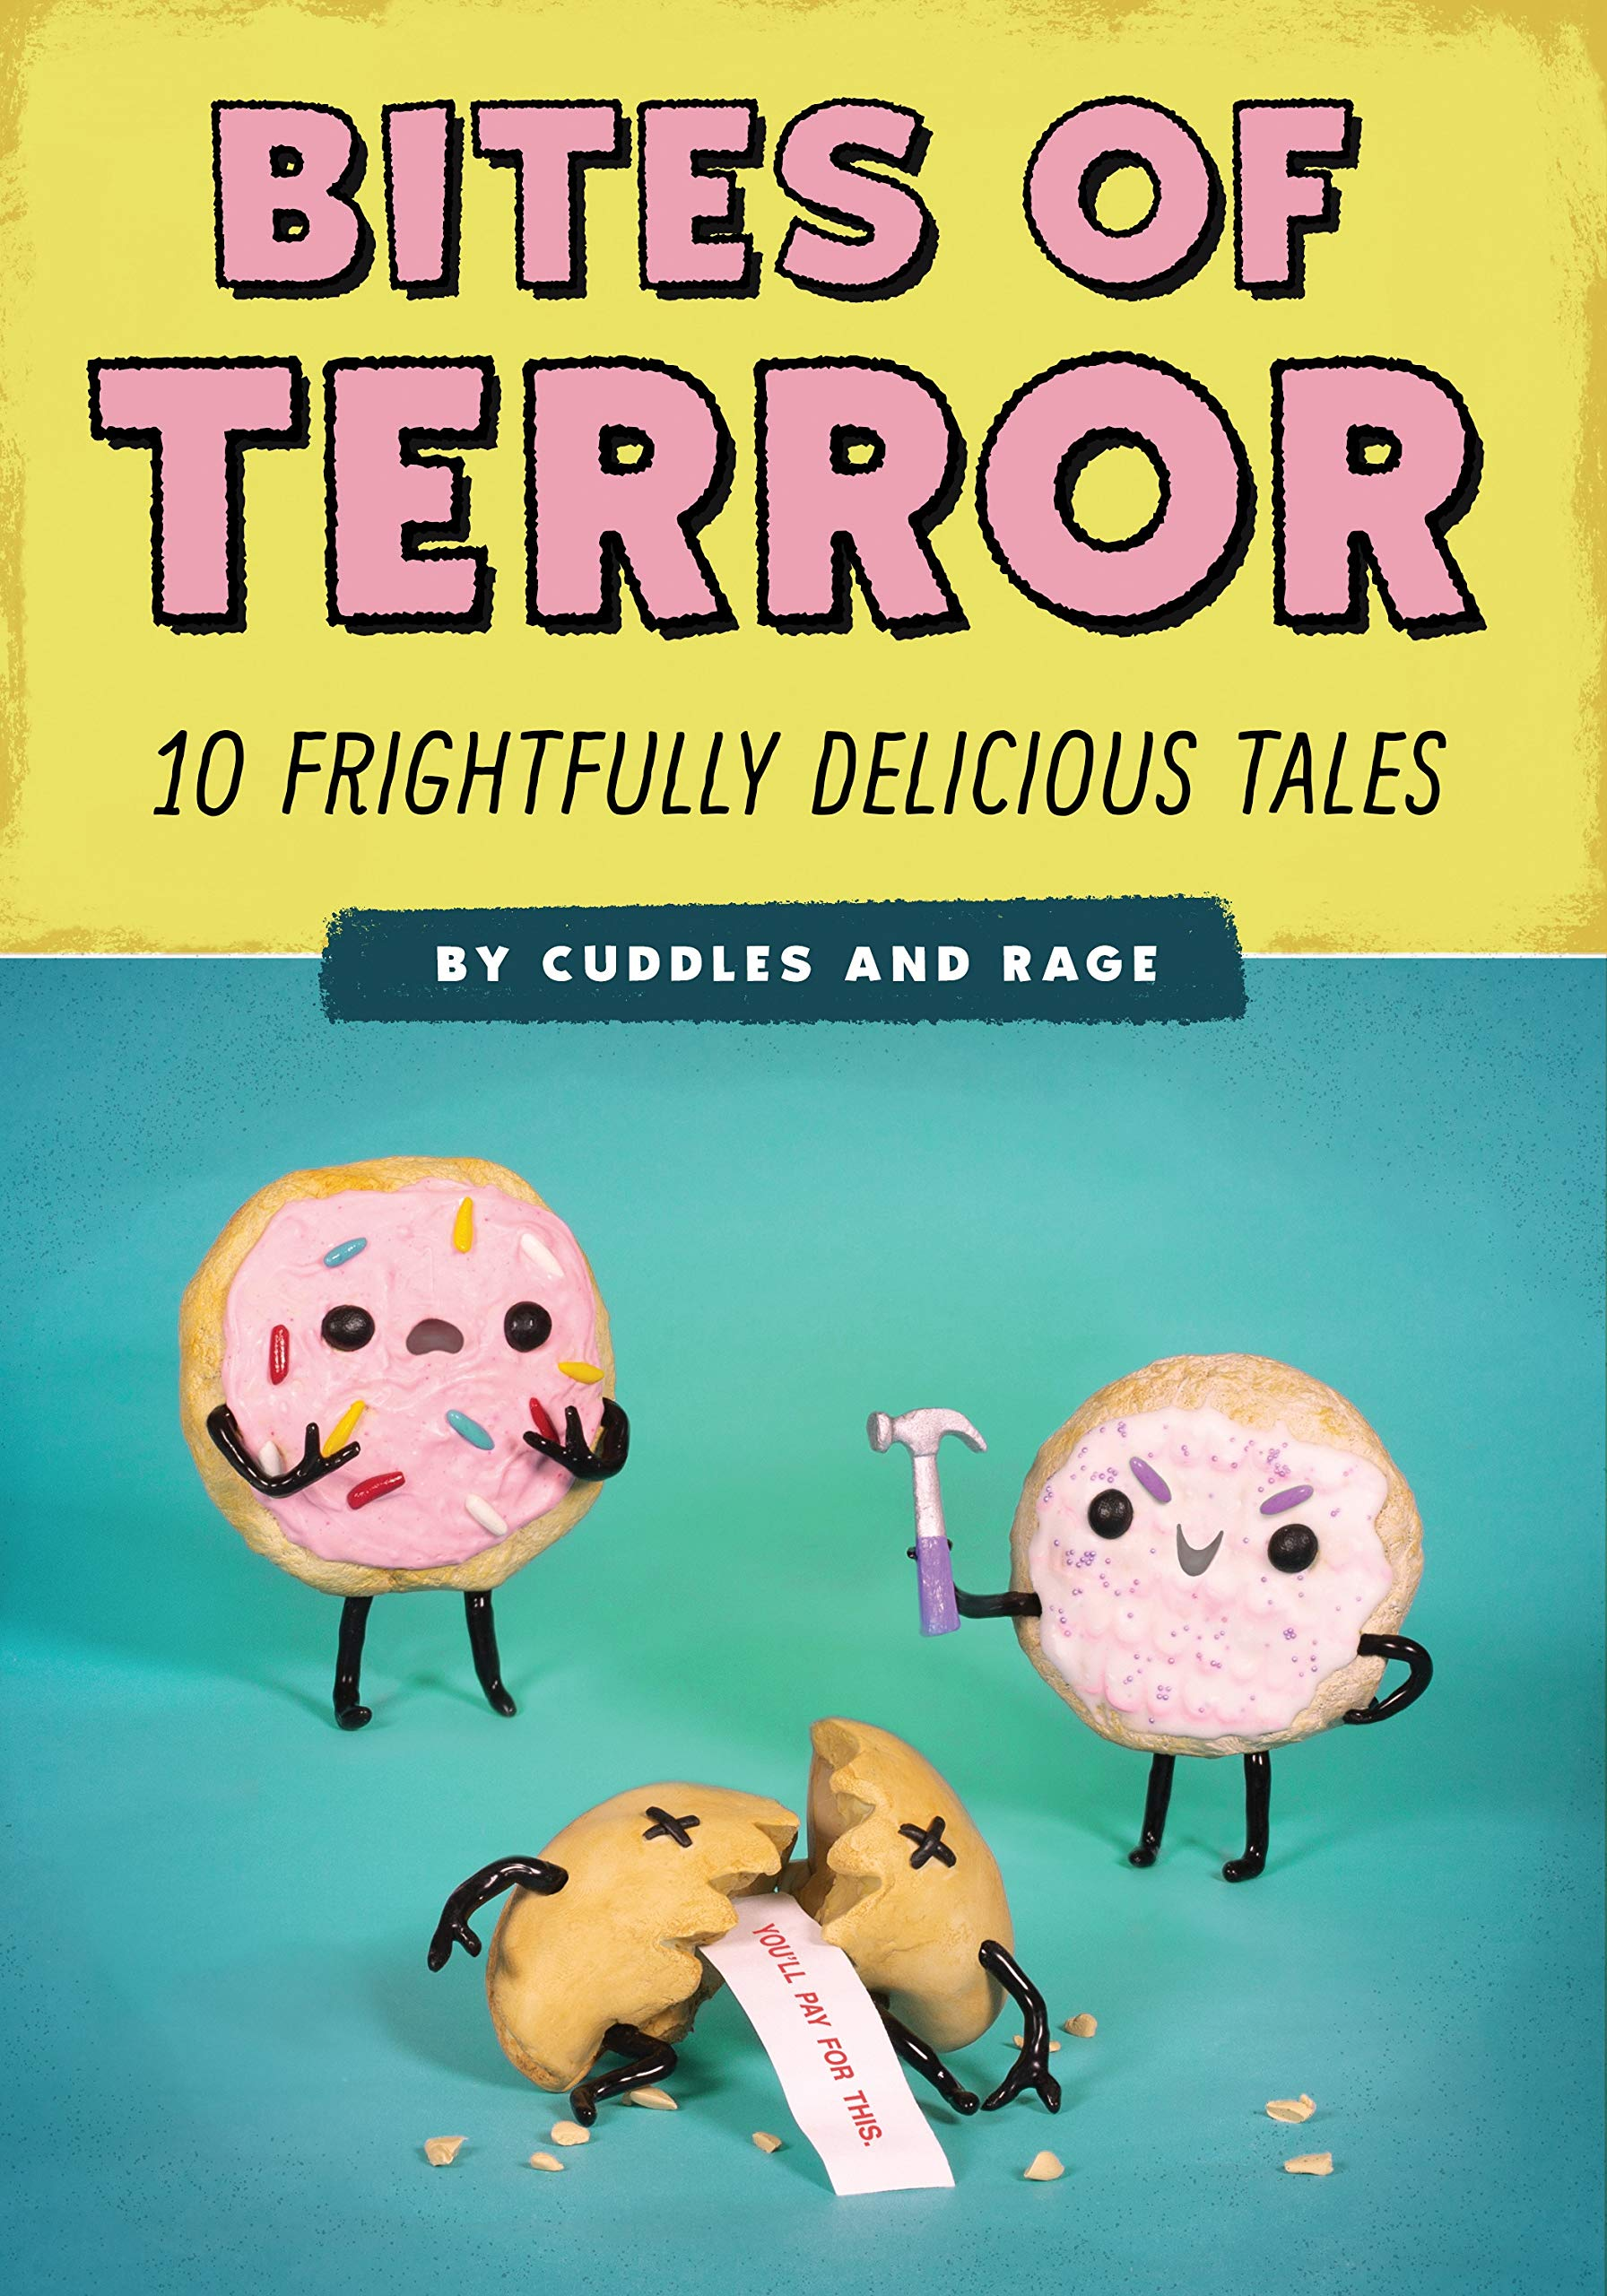 Bites of Terror: 10 Frightfully Delicious Tales by Cuddles and Rage